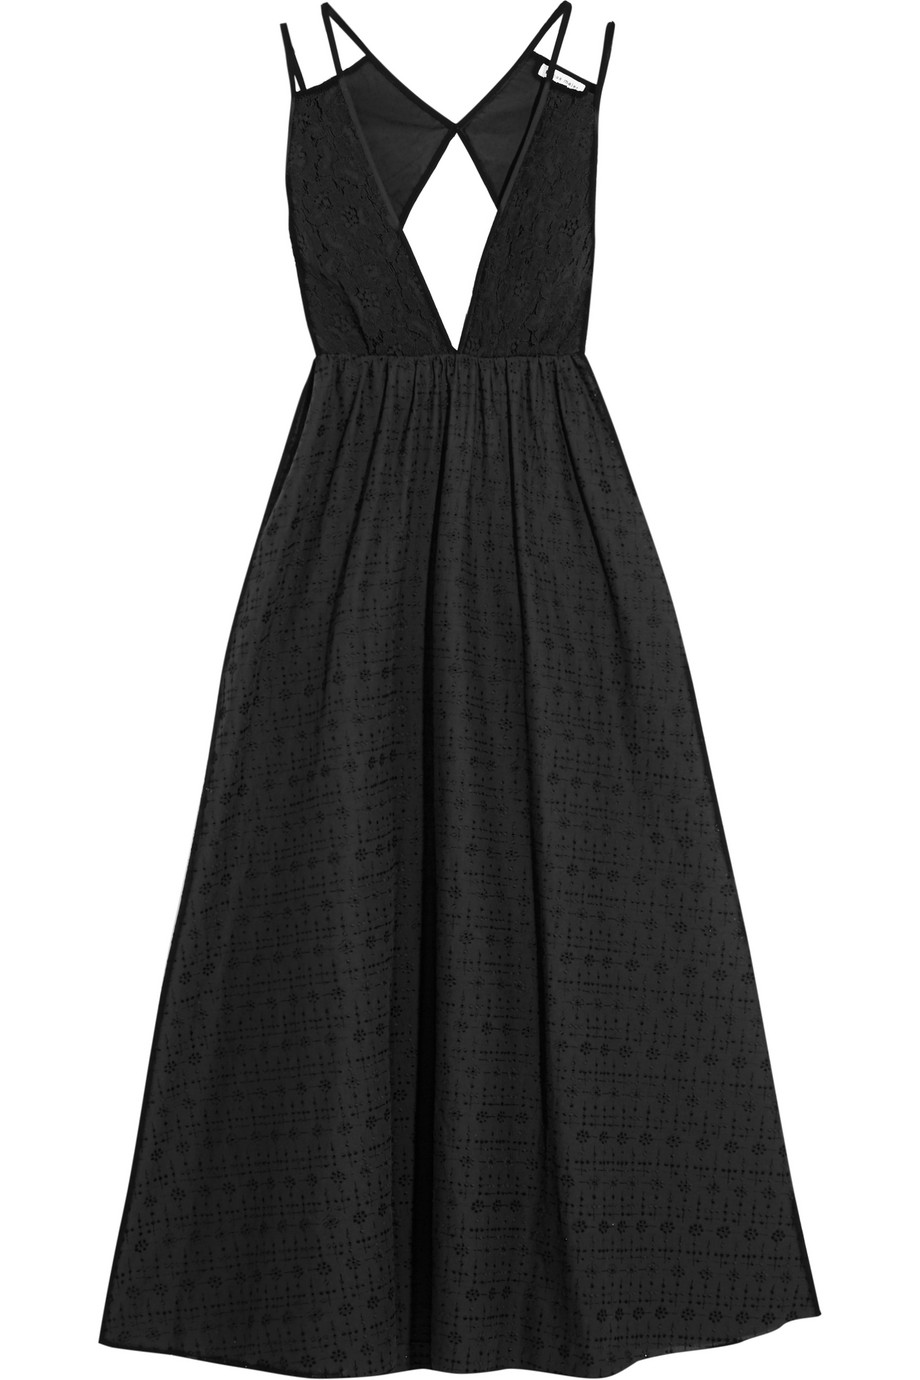 Tomas Maier Cutout Guipure Lace and Broderie Anglaise Cotton Dress, Black, Women's, Size: 8